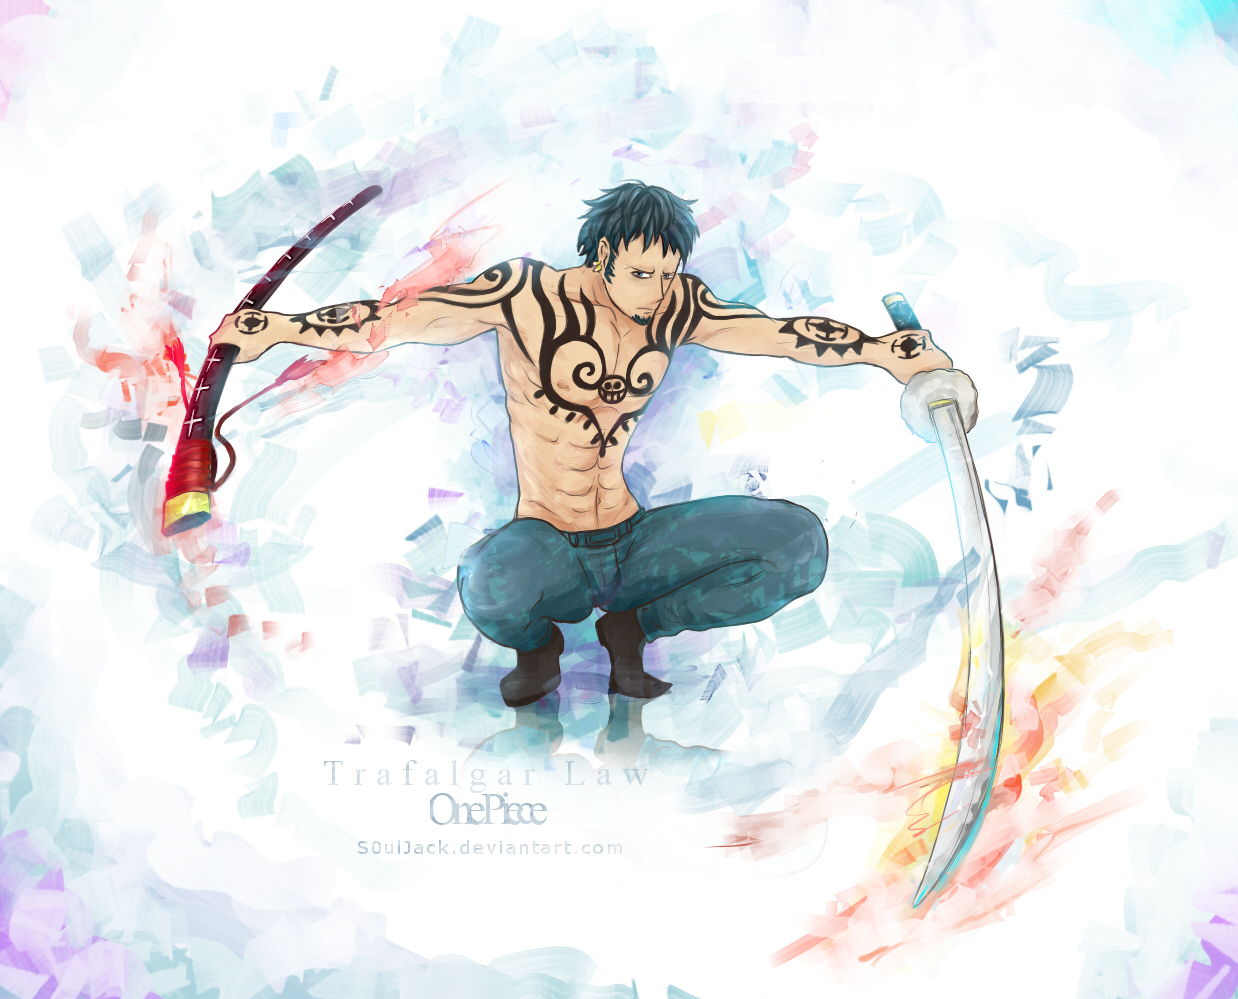 Trafalgar law by s0uljack on deviantart for Trafalgar law tattoos